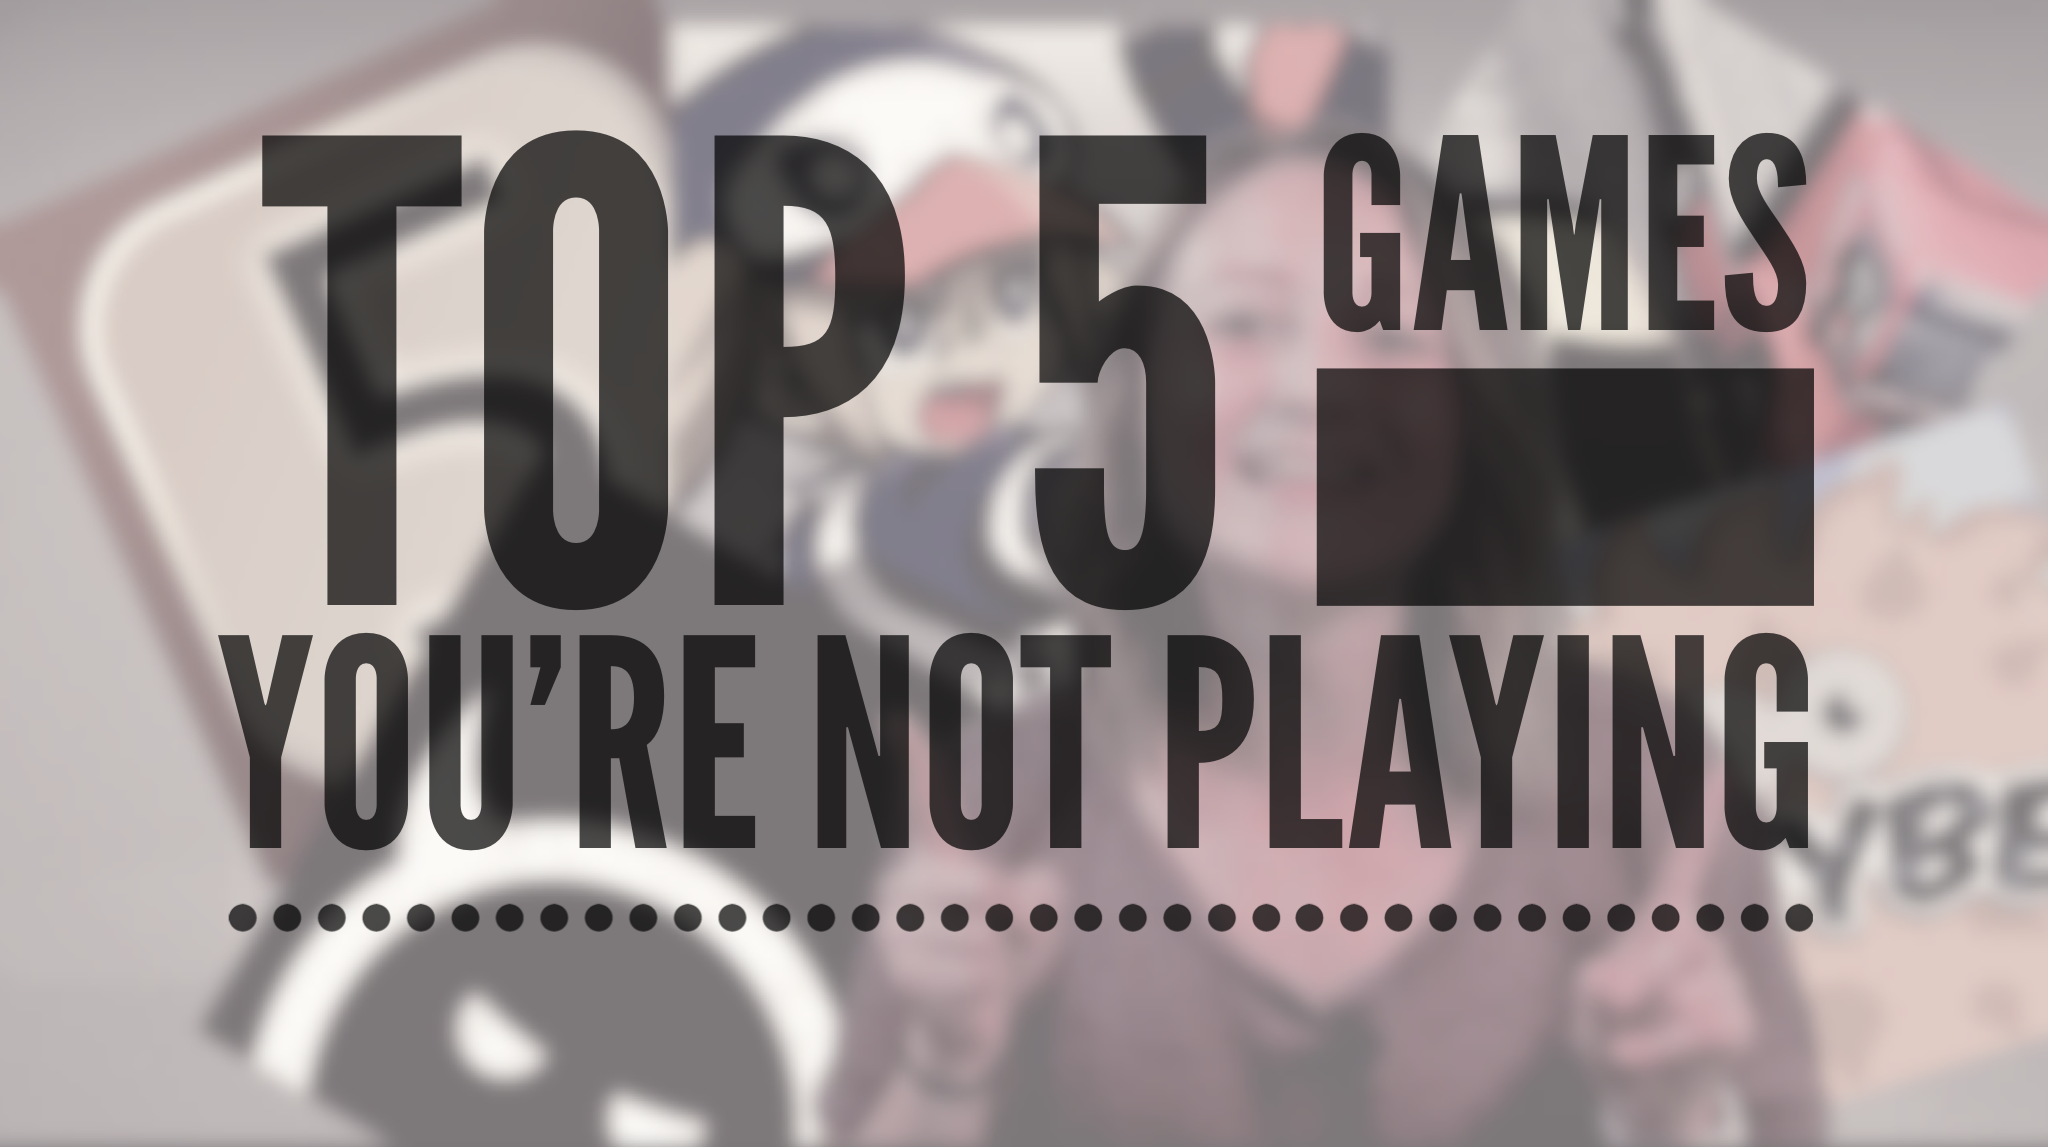 Top 5 games you're not playing